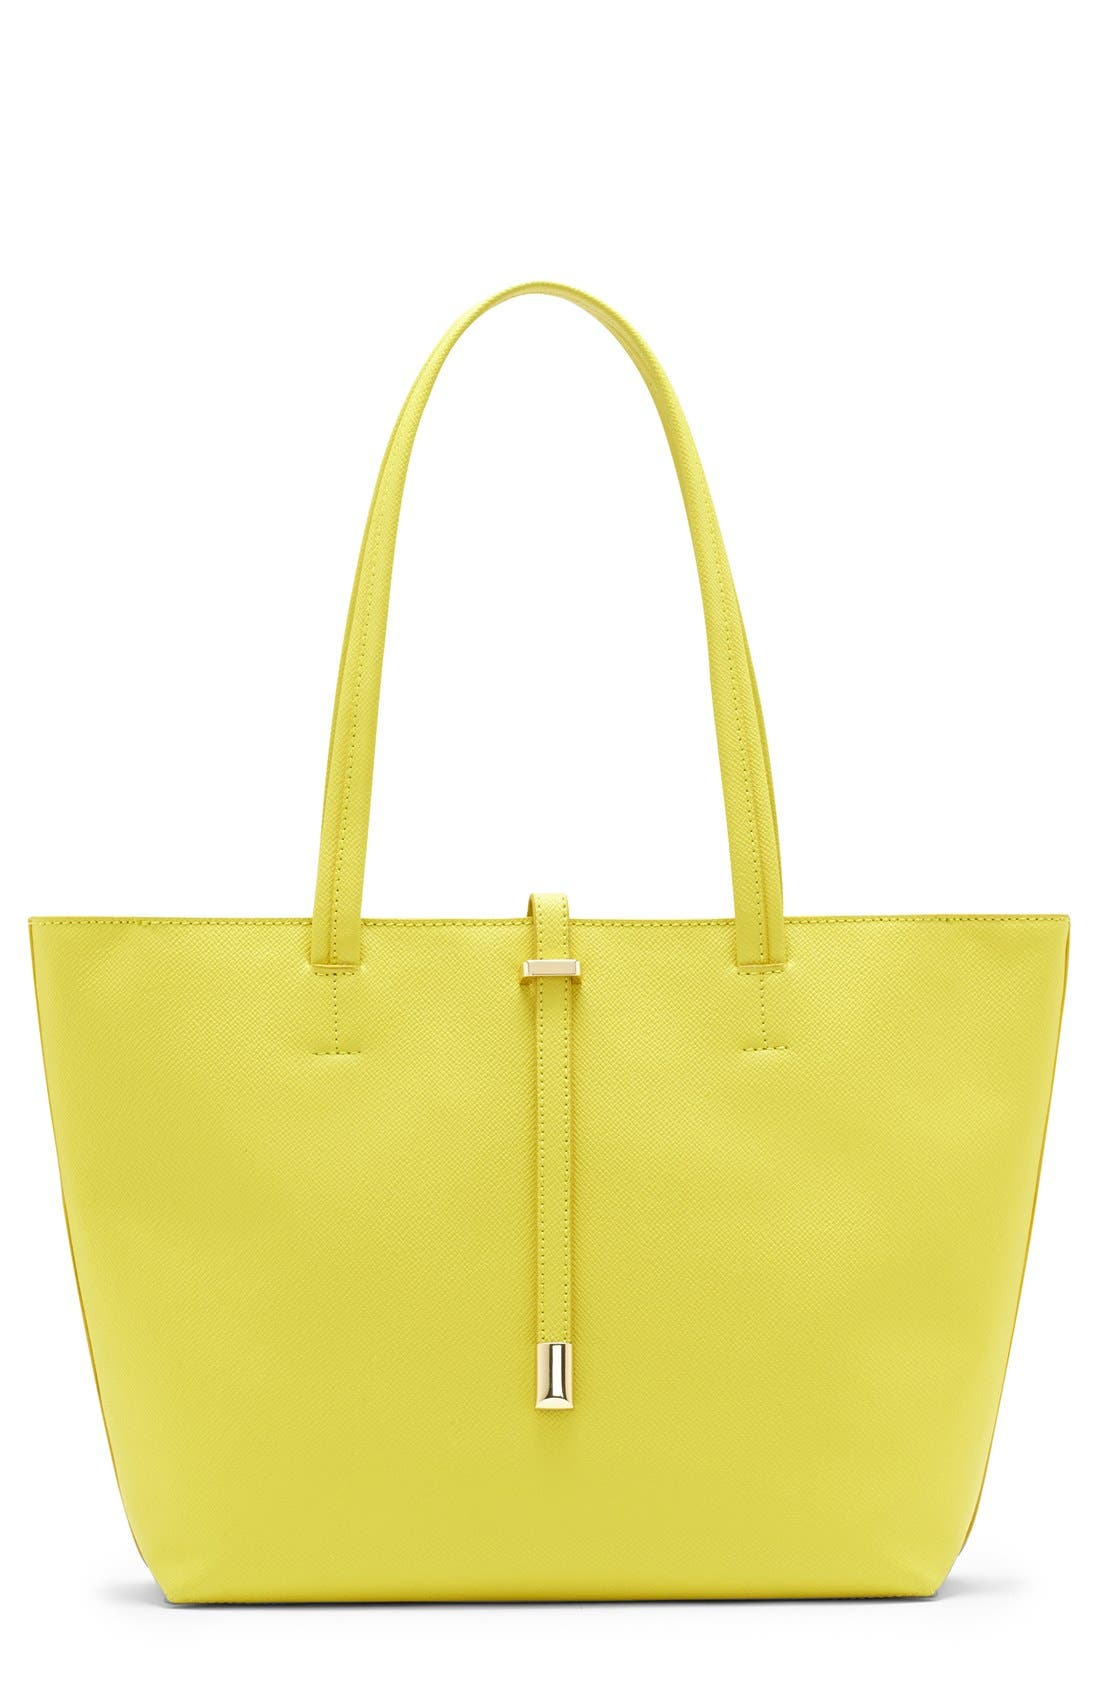 Main Image - Vince Camuto 'Leila - Small' Leather Tote